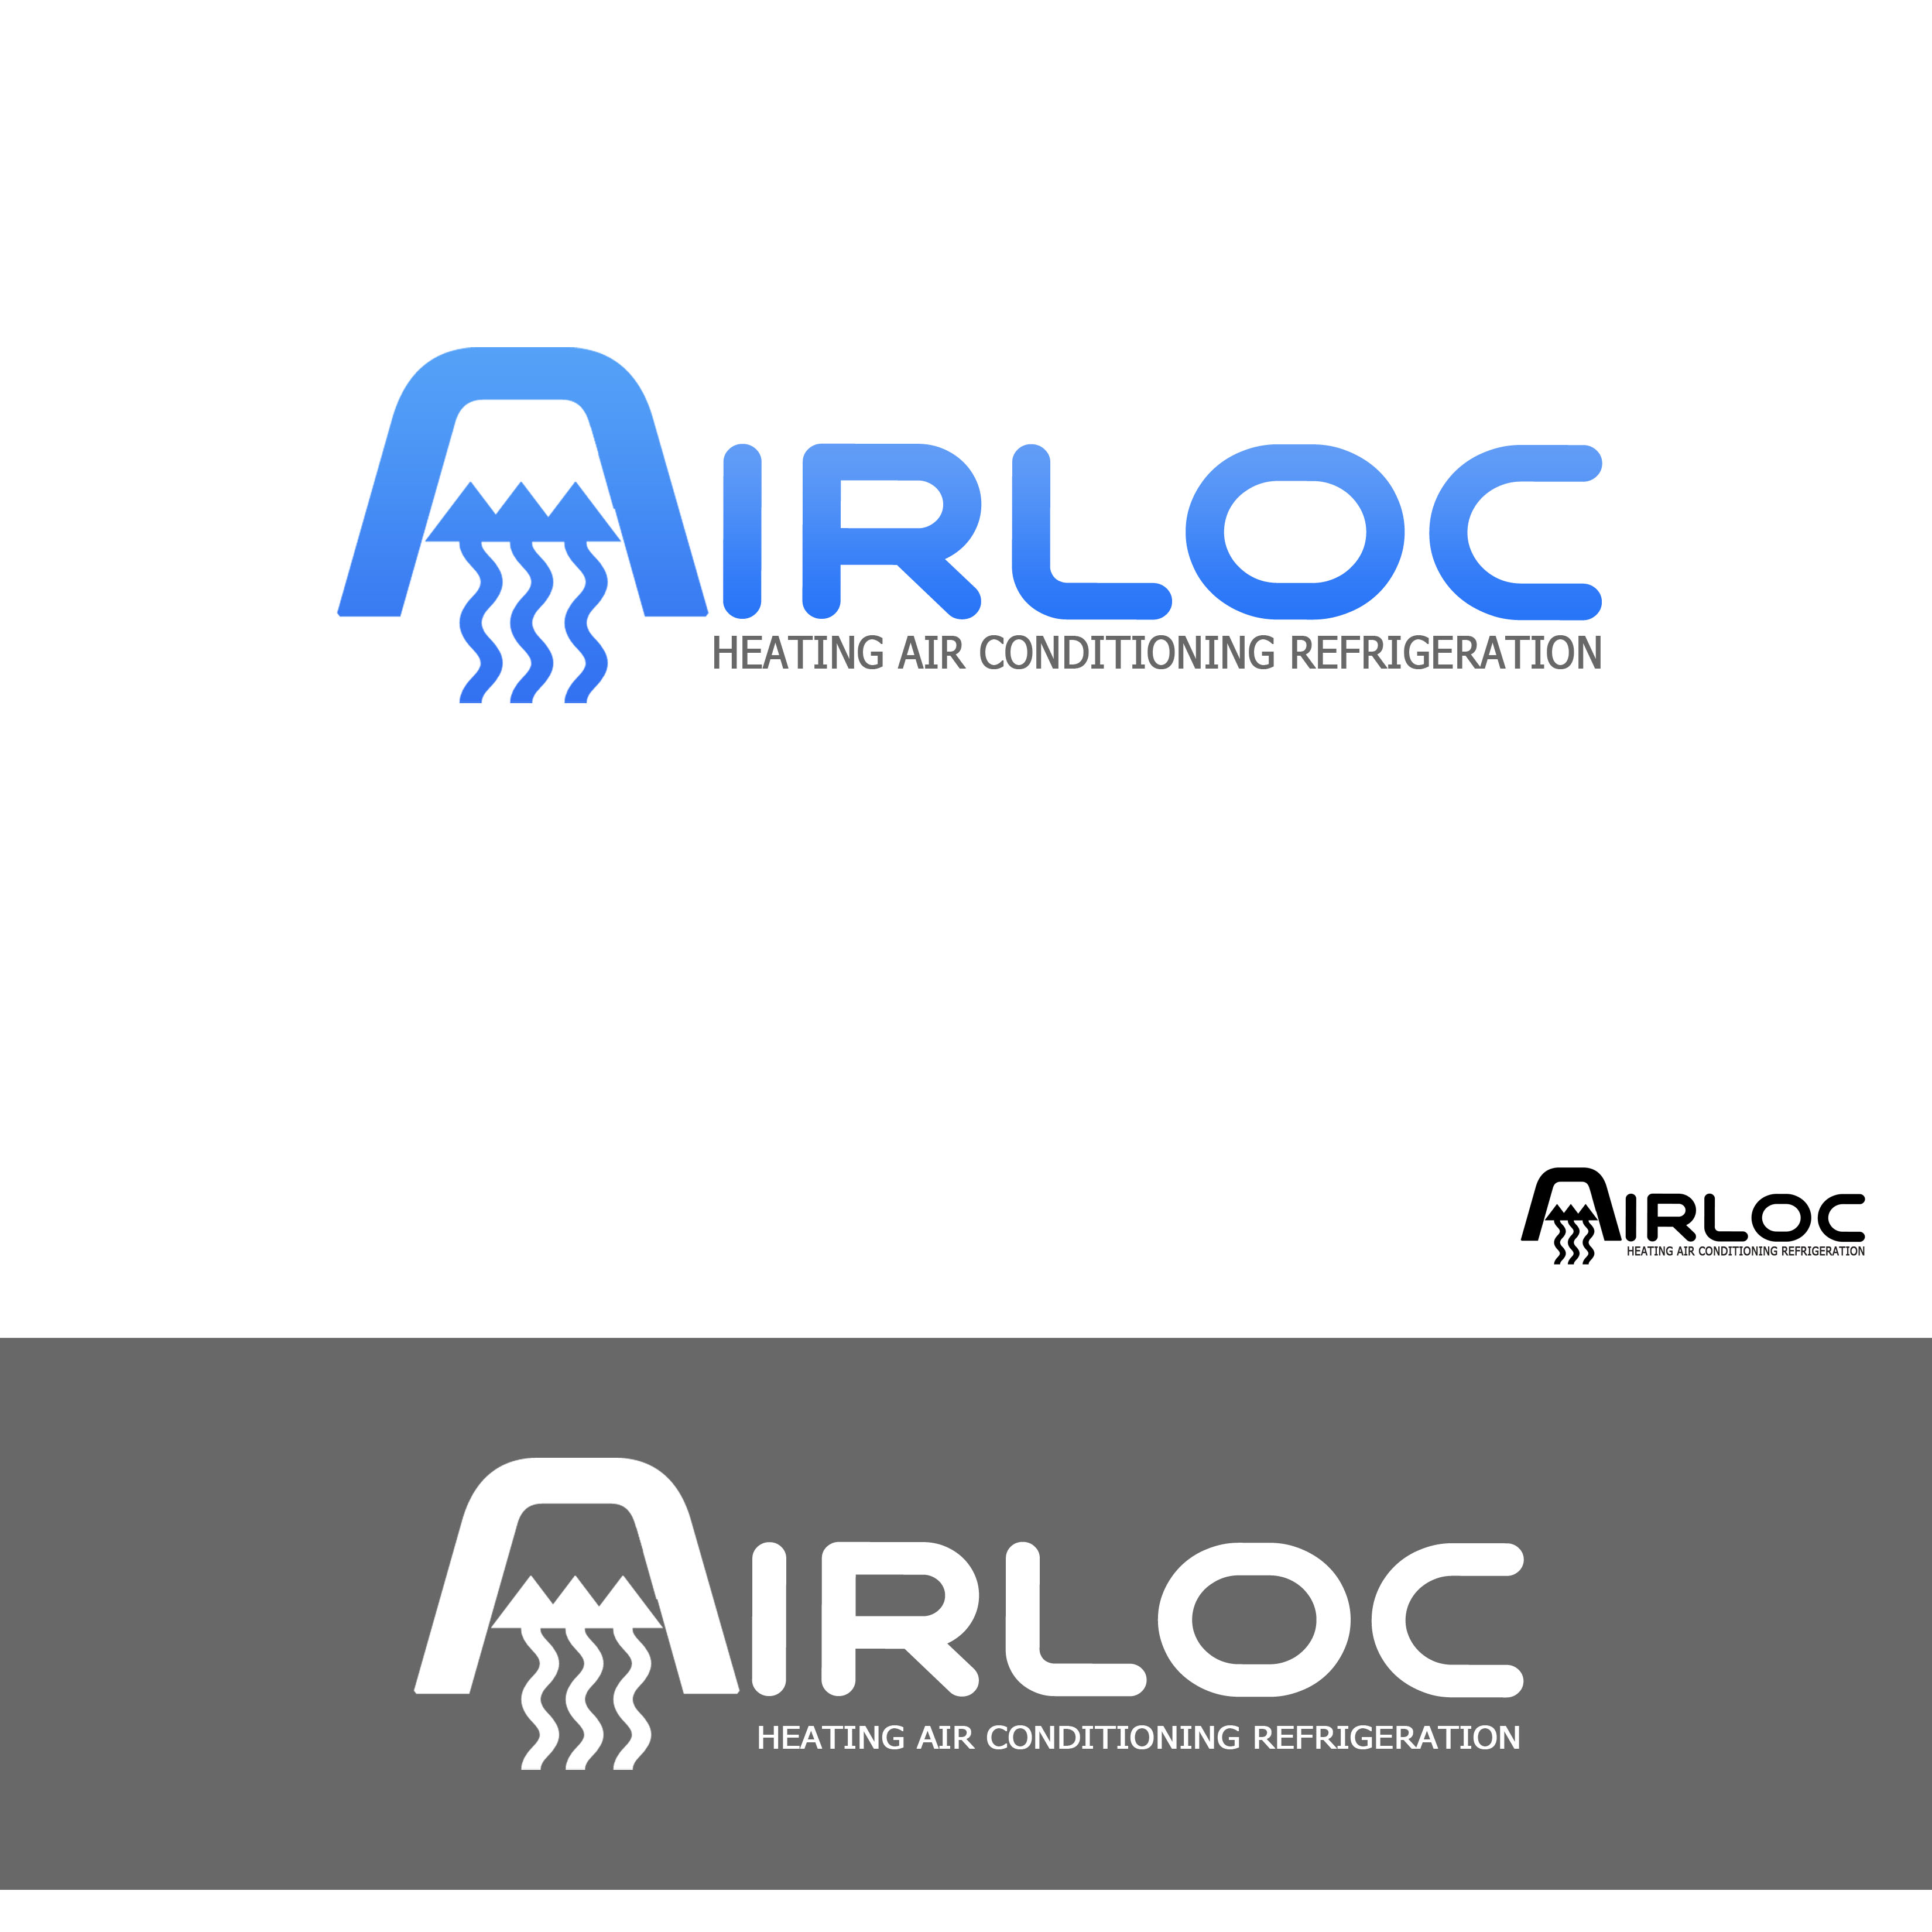 Logo Design by Allan Esclamado - Entry No. 64 in the Logo Design Contest Airloc Logo Design.